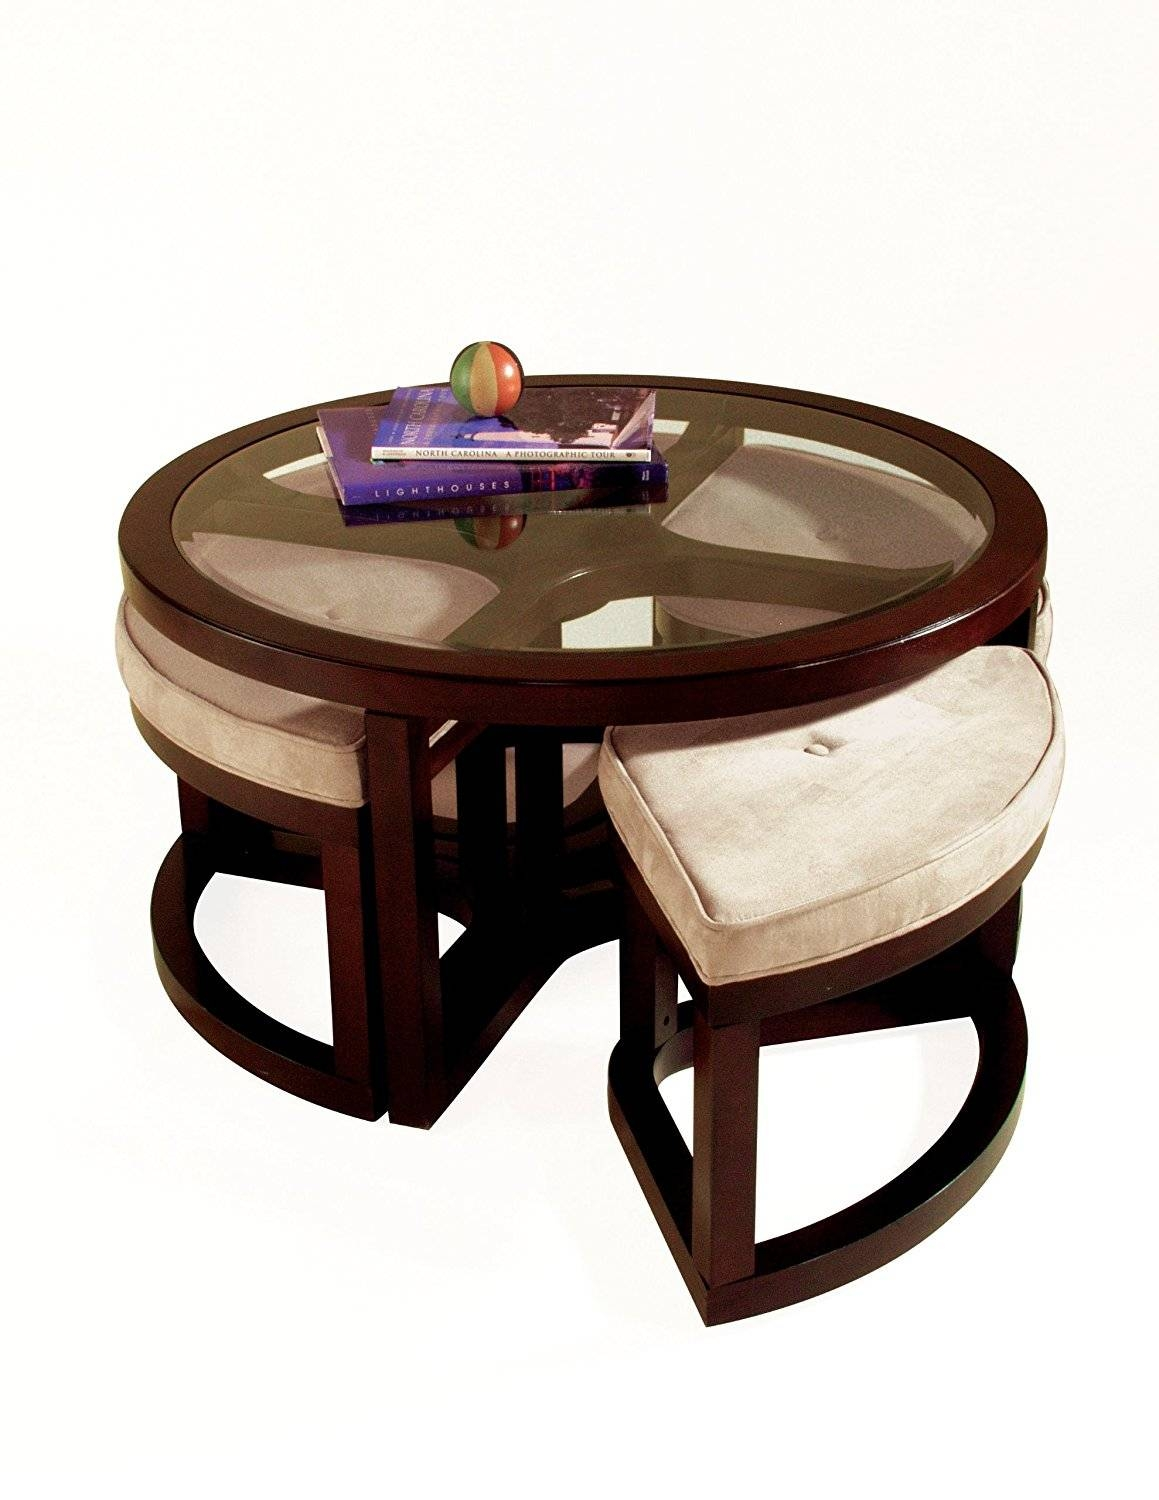 Best Round Coffee Tables With Stools | Pick My Coffee Table Pertaining To Coffee Table With Stools (View 1 of 30)